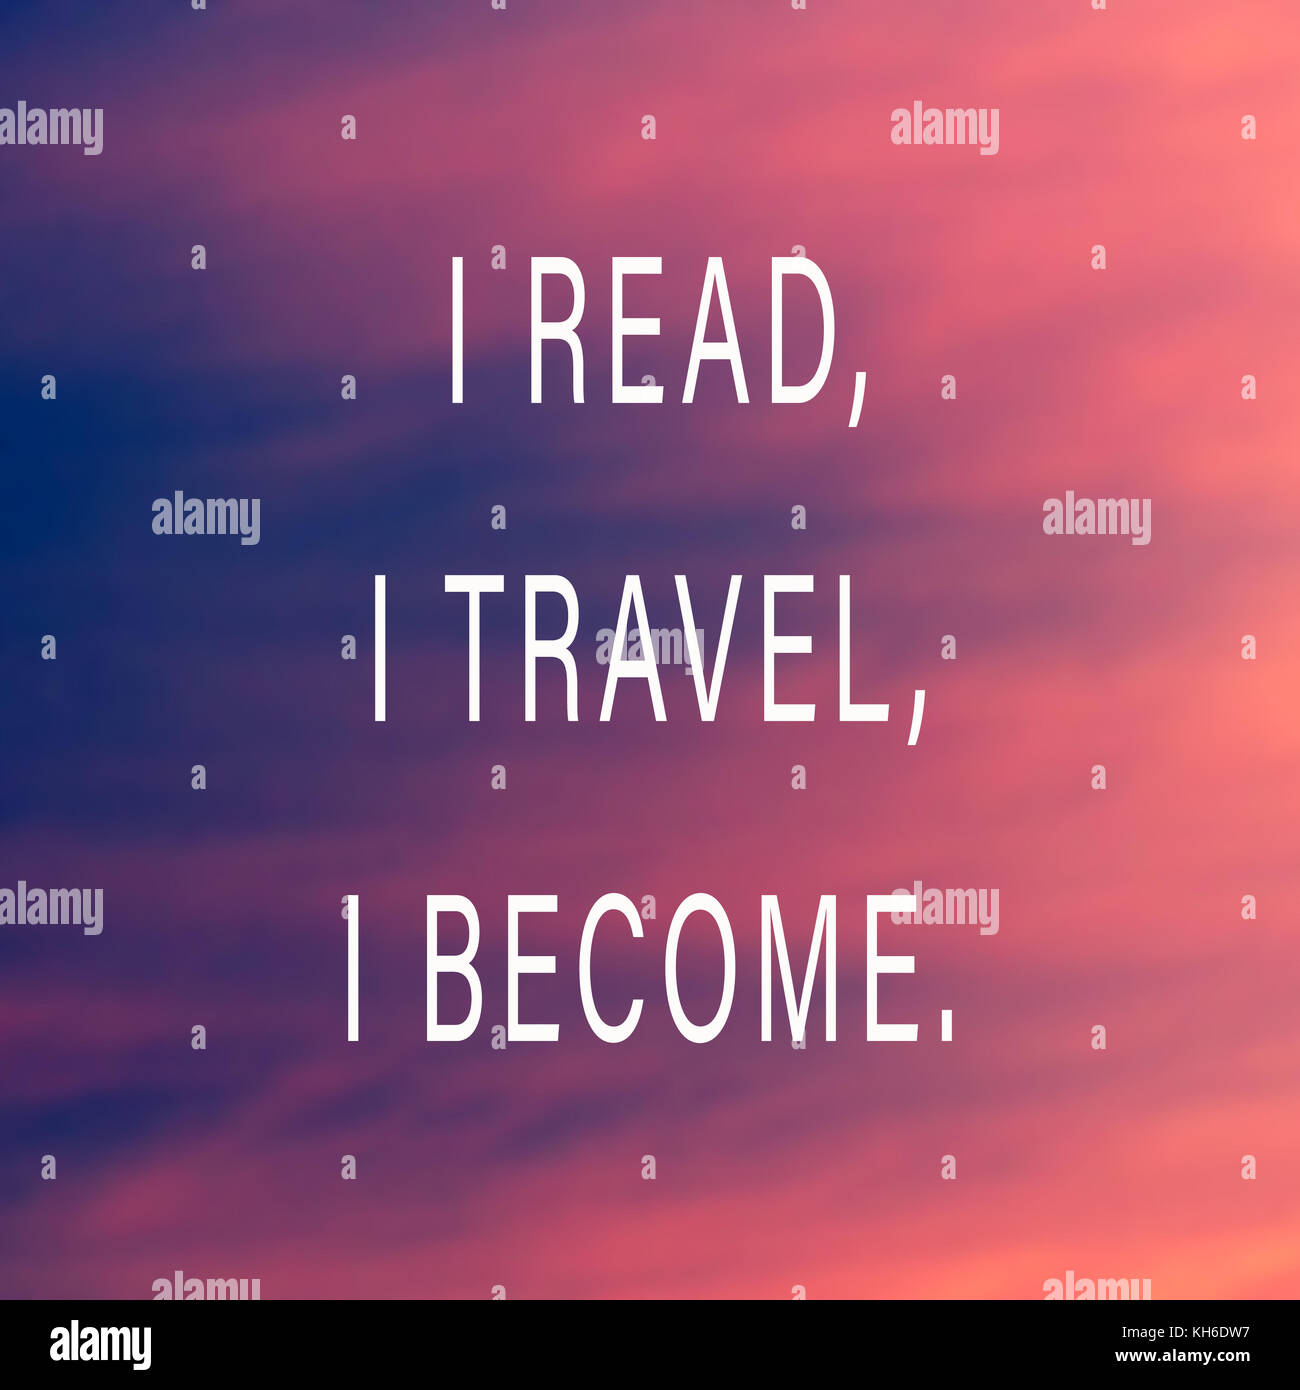 Travel Inspirational Quotes I Read I Travel I Become Colorful